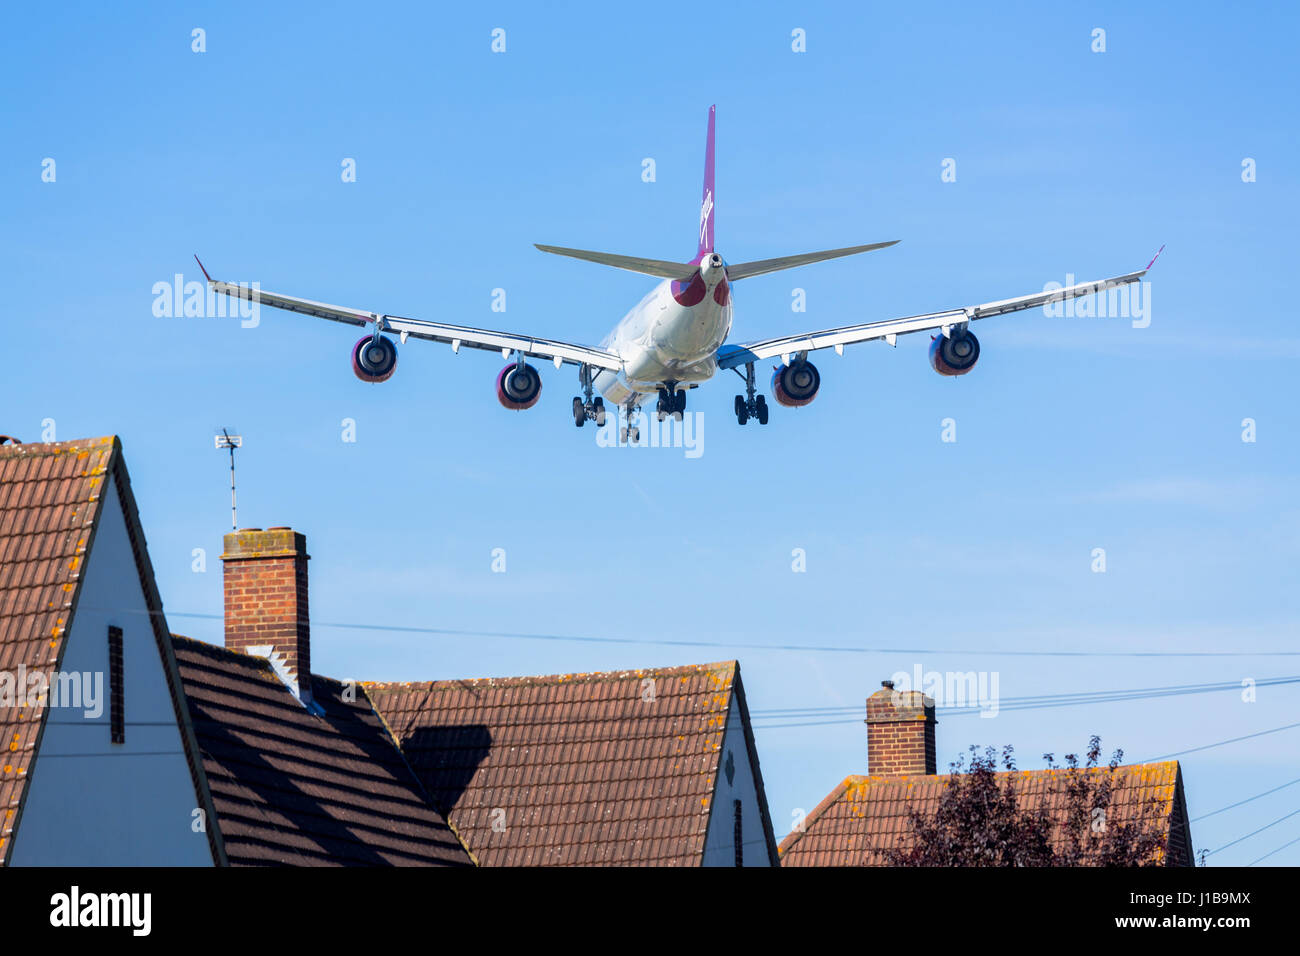 Avions volant bas au-dessus de l'origine de maisons la pollution sonore, l'aéroport de Heathrow, Londres, Photo Stock